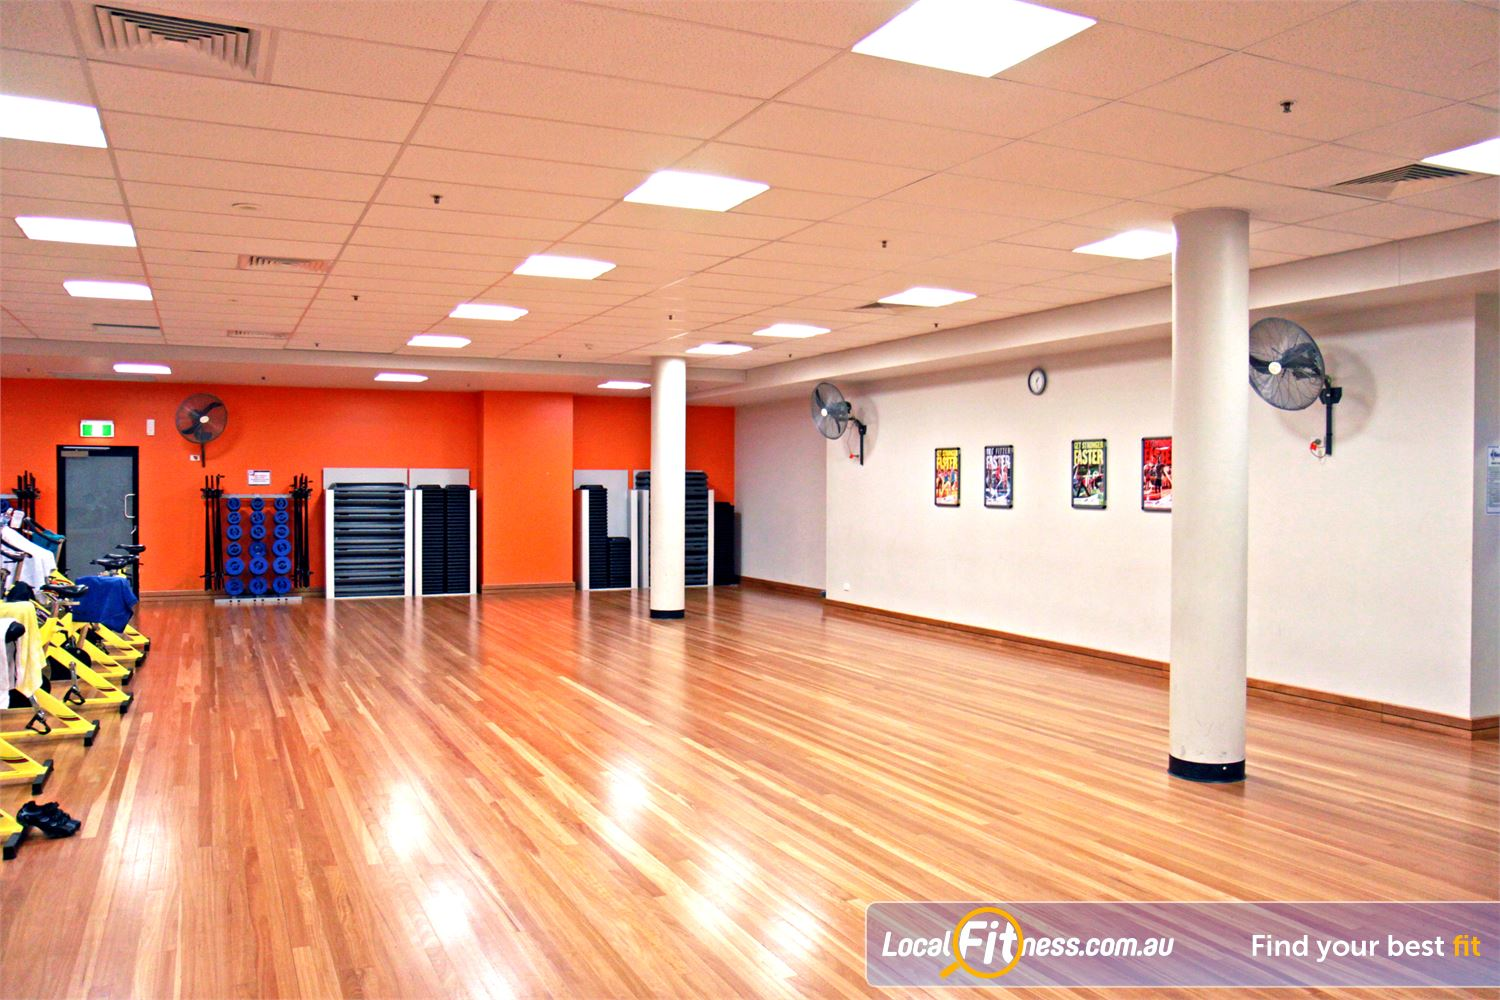 Goodlife Health Clubs Near Herston The dedicated and spacious Fortitude Valley group fitness studio.